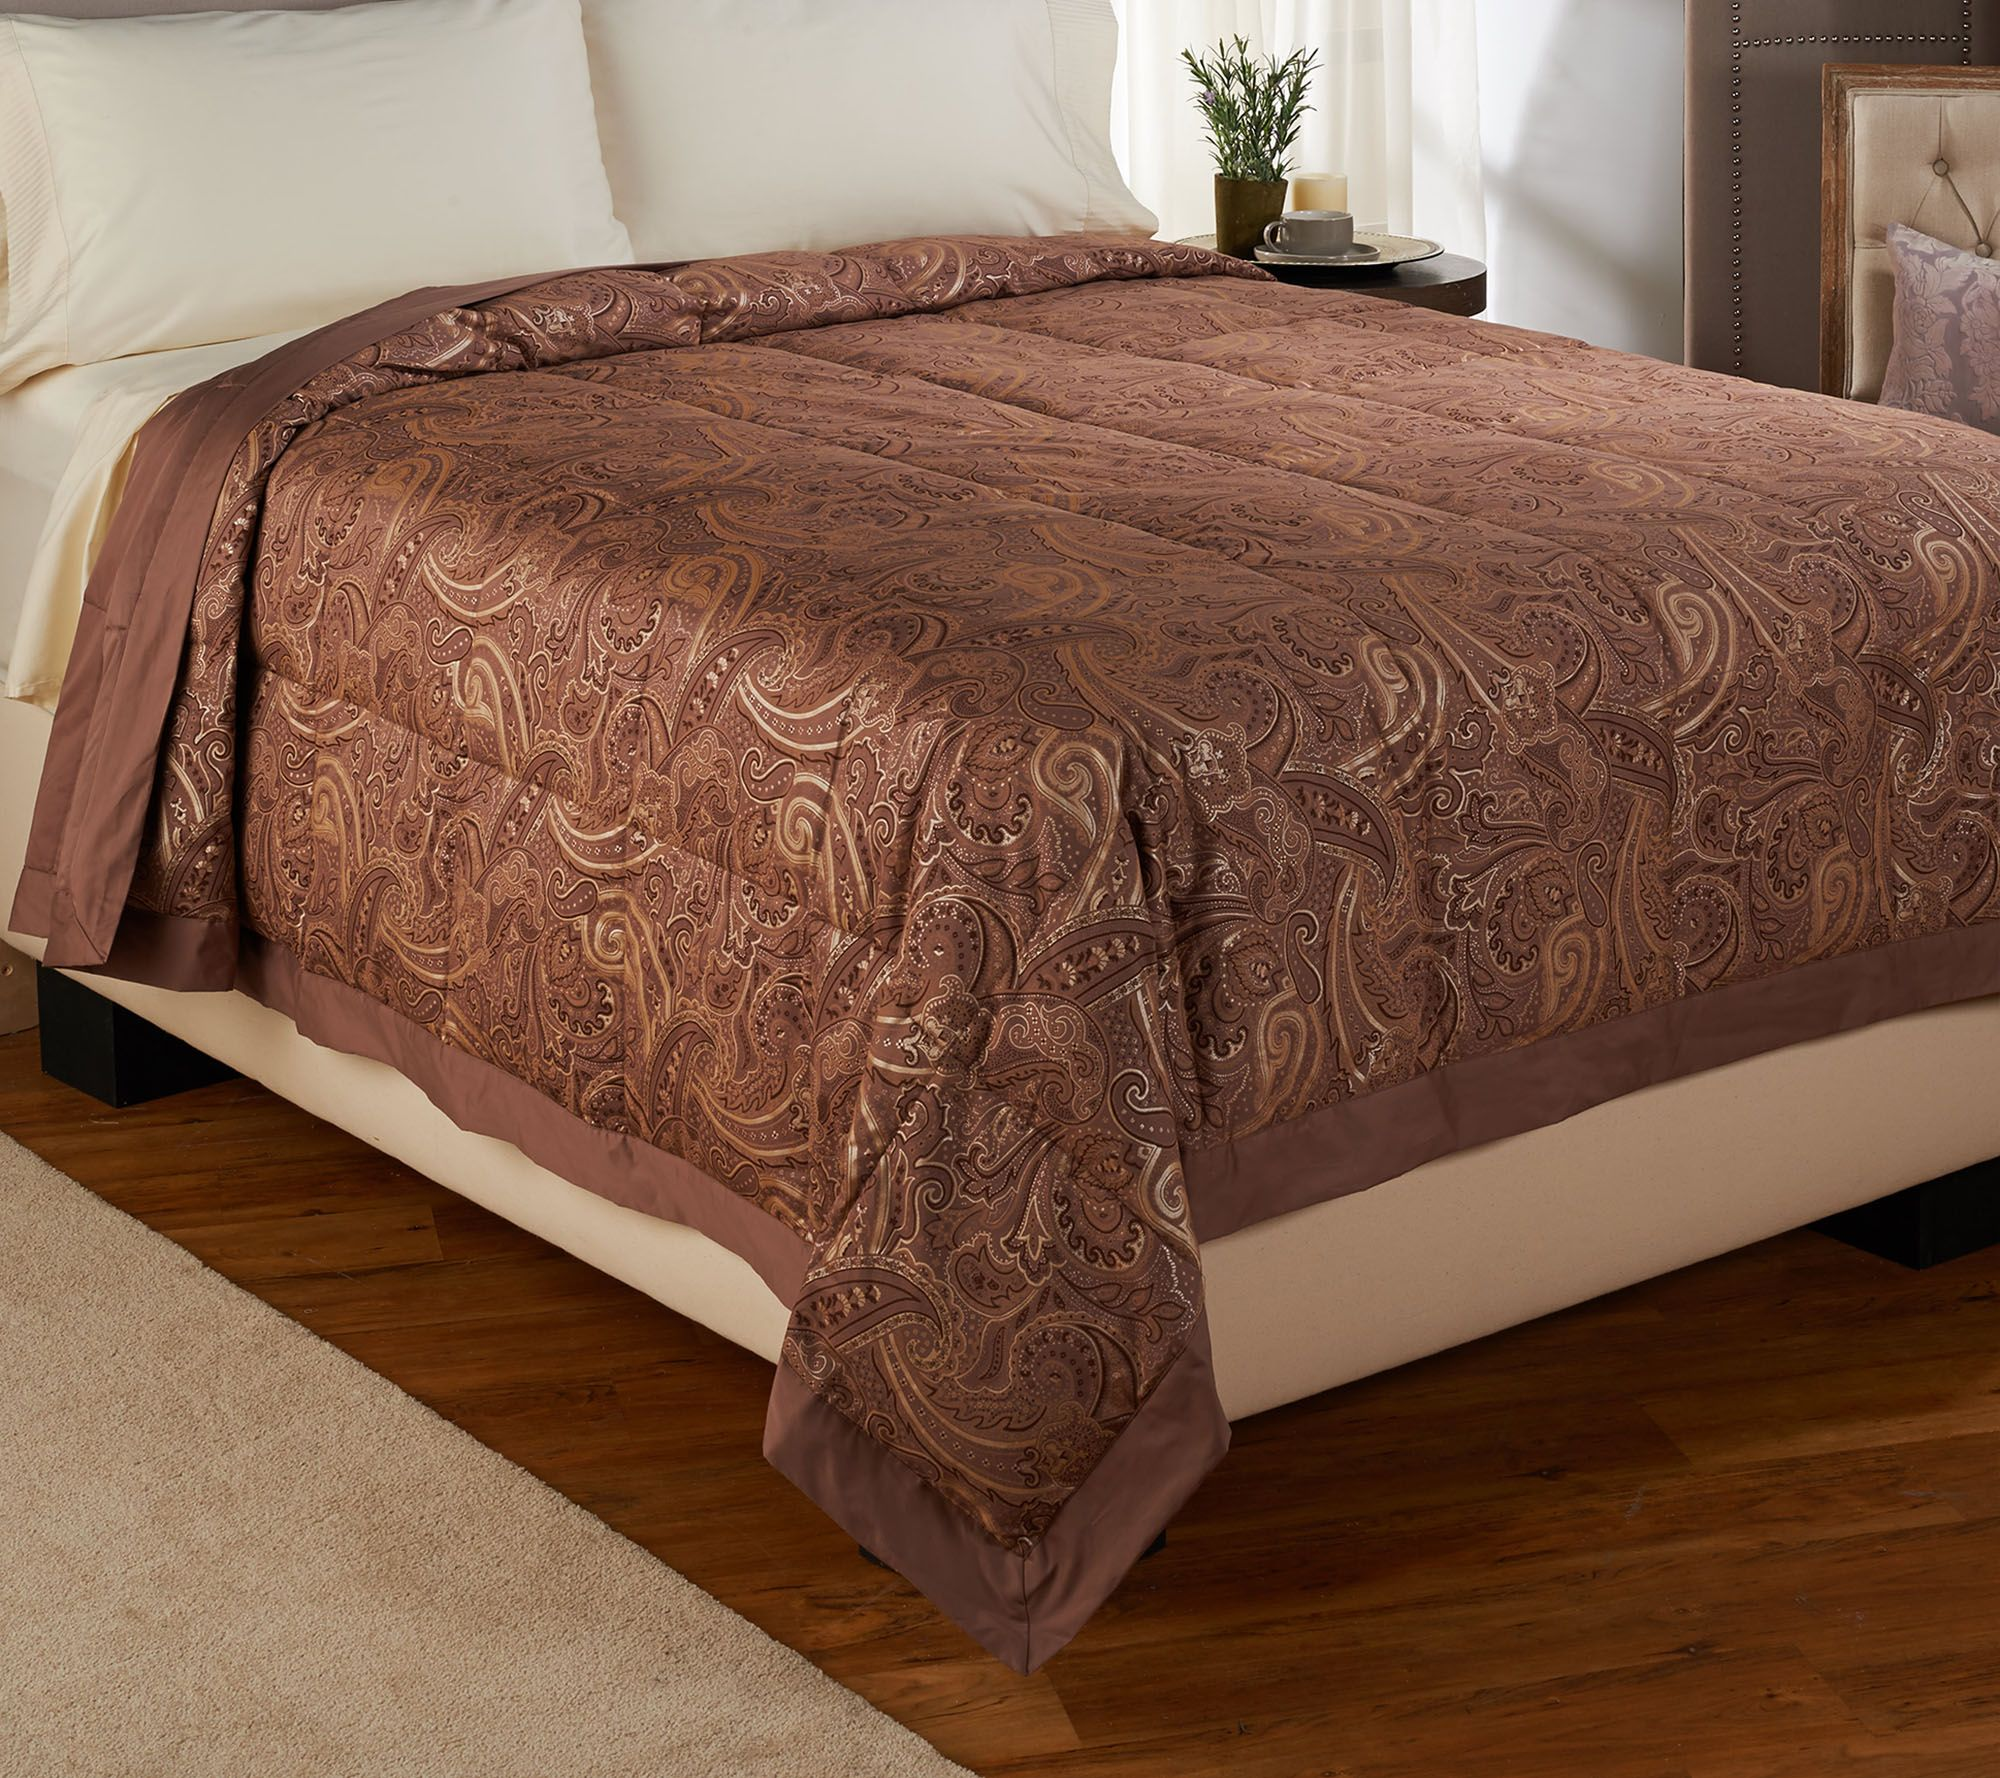 Northern Nights Amalfi Coast 300TC 550FP Reversible FL Down Blanket —  QVC.com 6357d4ee3